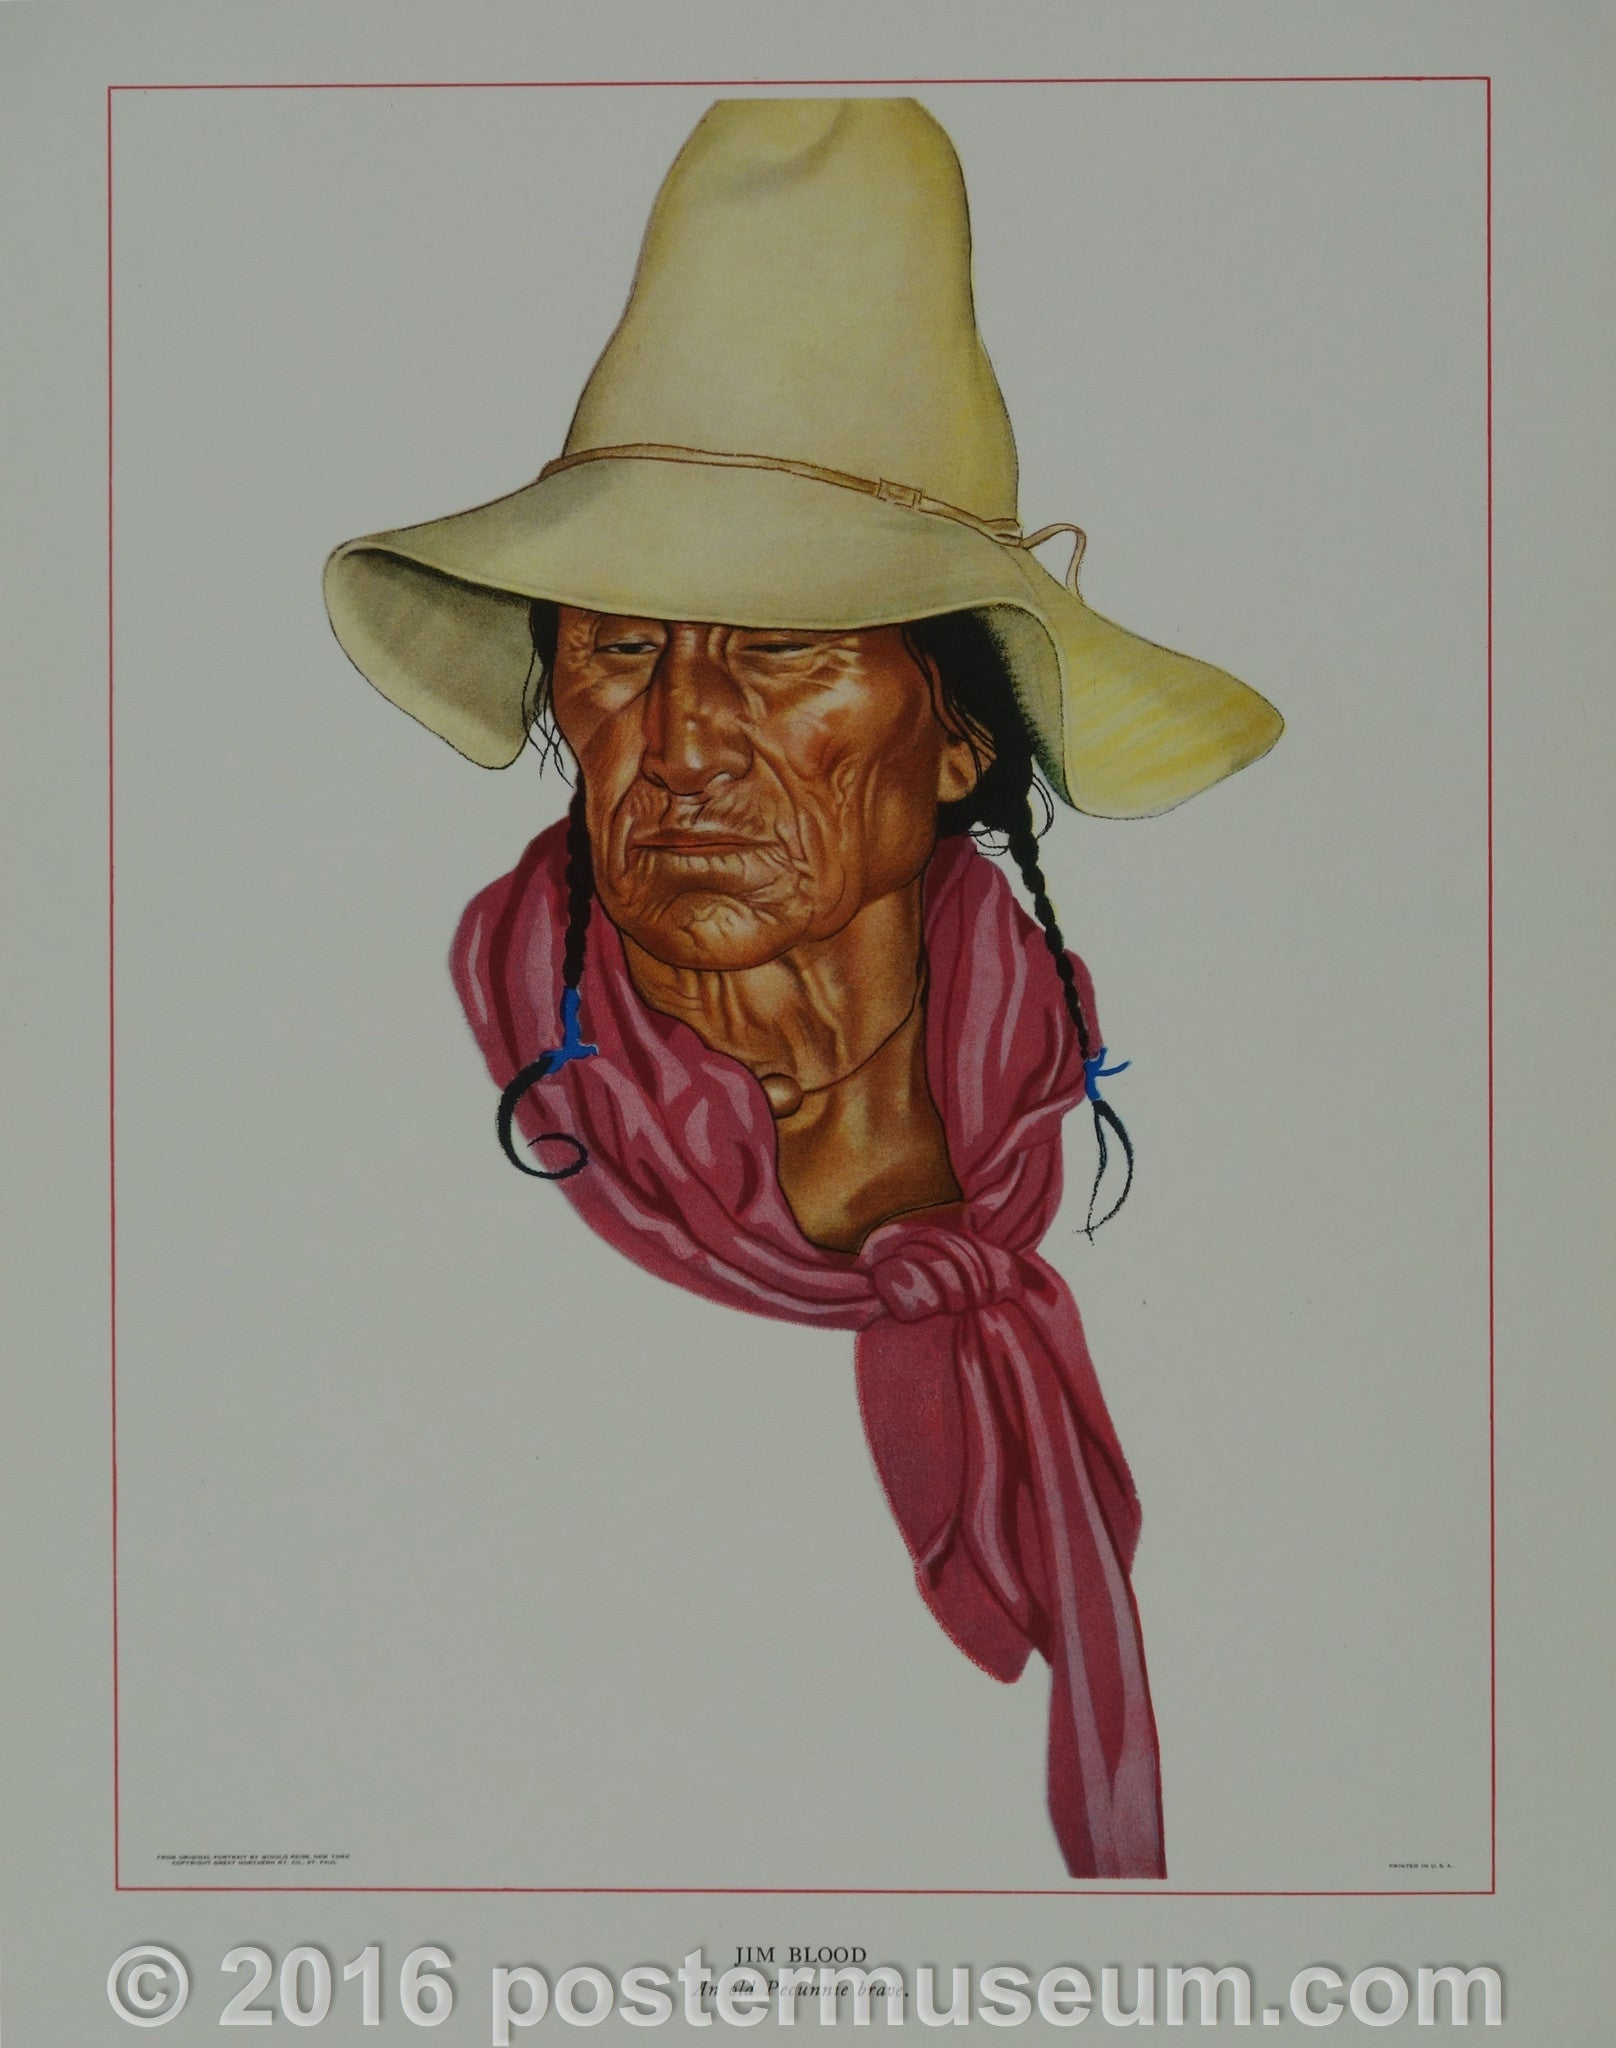 Portrait of Blackfeet Indian - Jim Blood